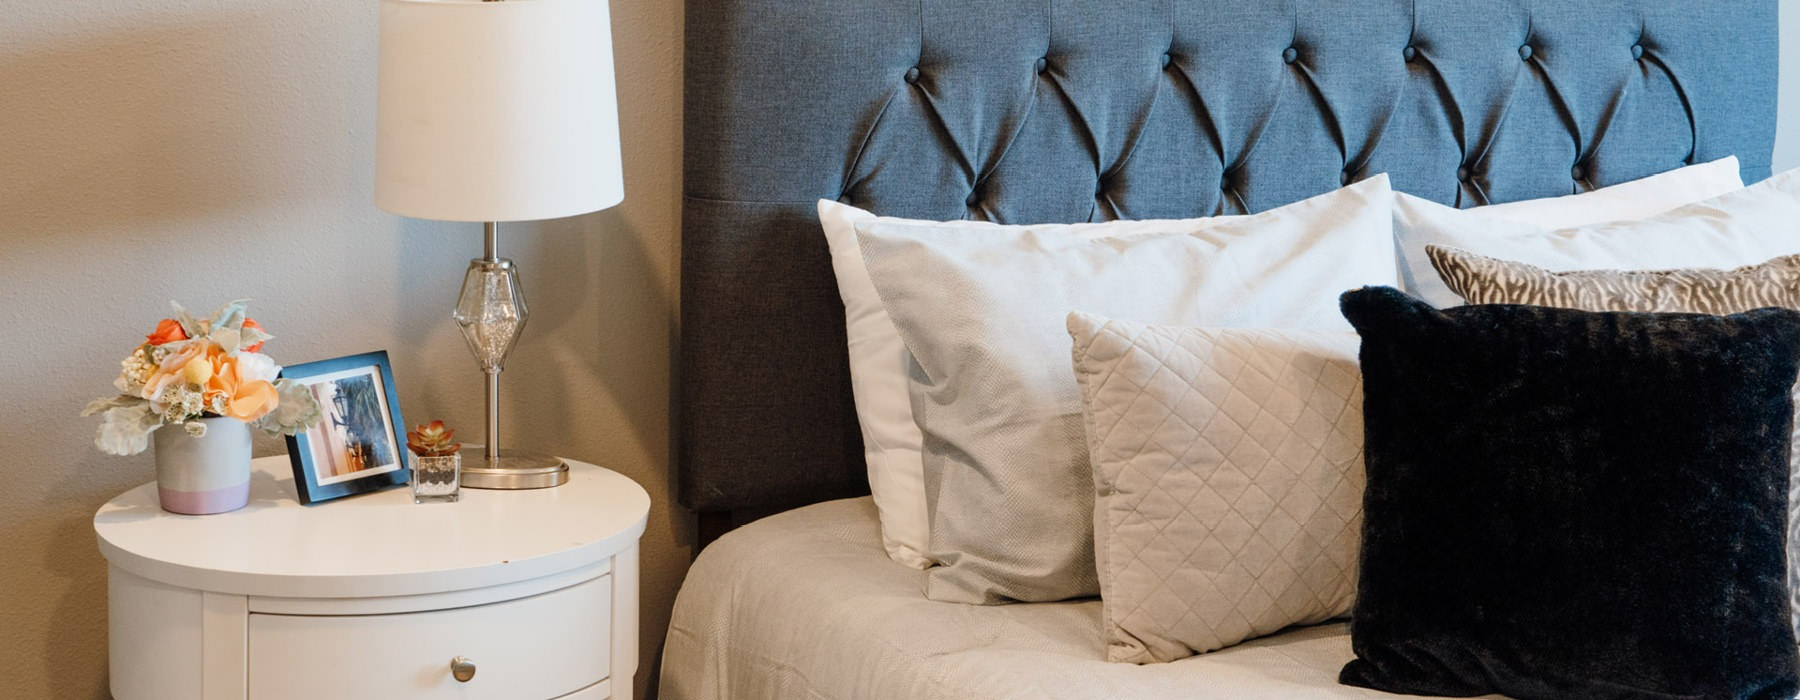 bedside table with lamp next to neatly made bed